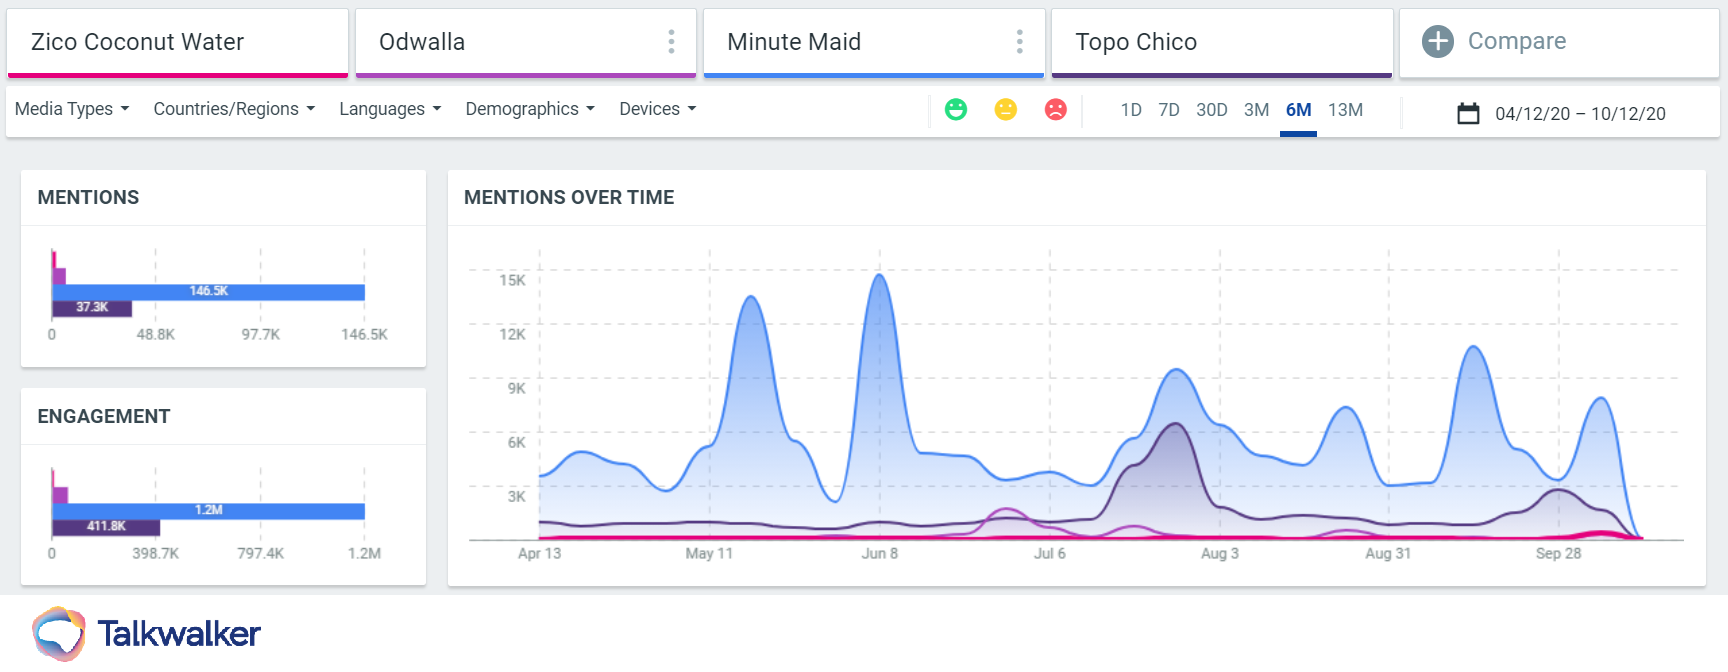 Zico coconut water Minute Maid mentions over time